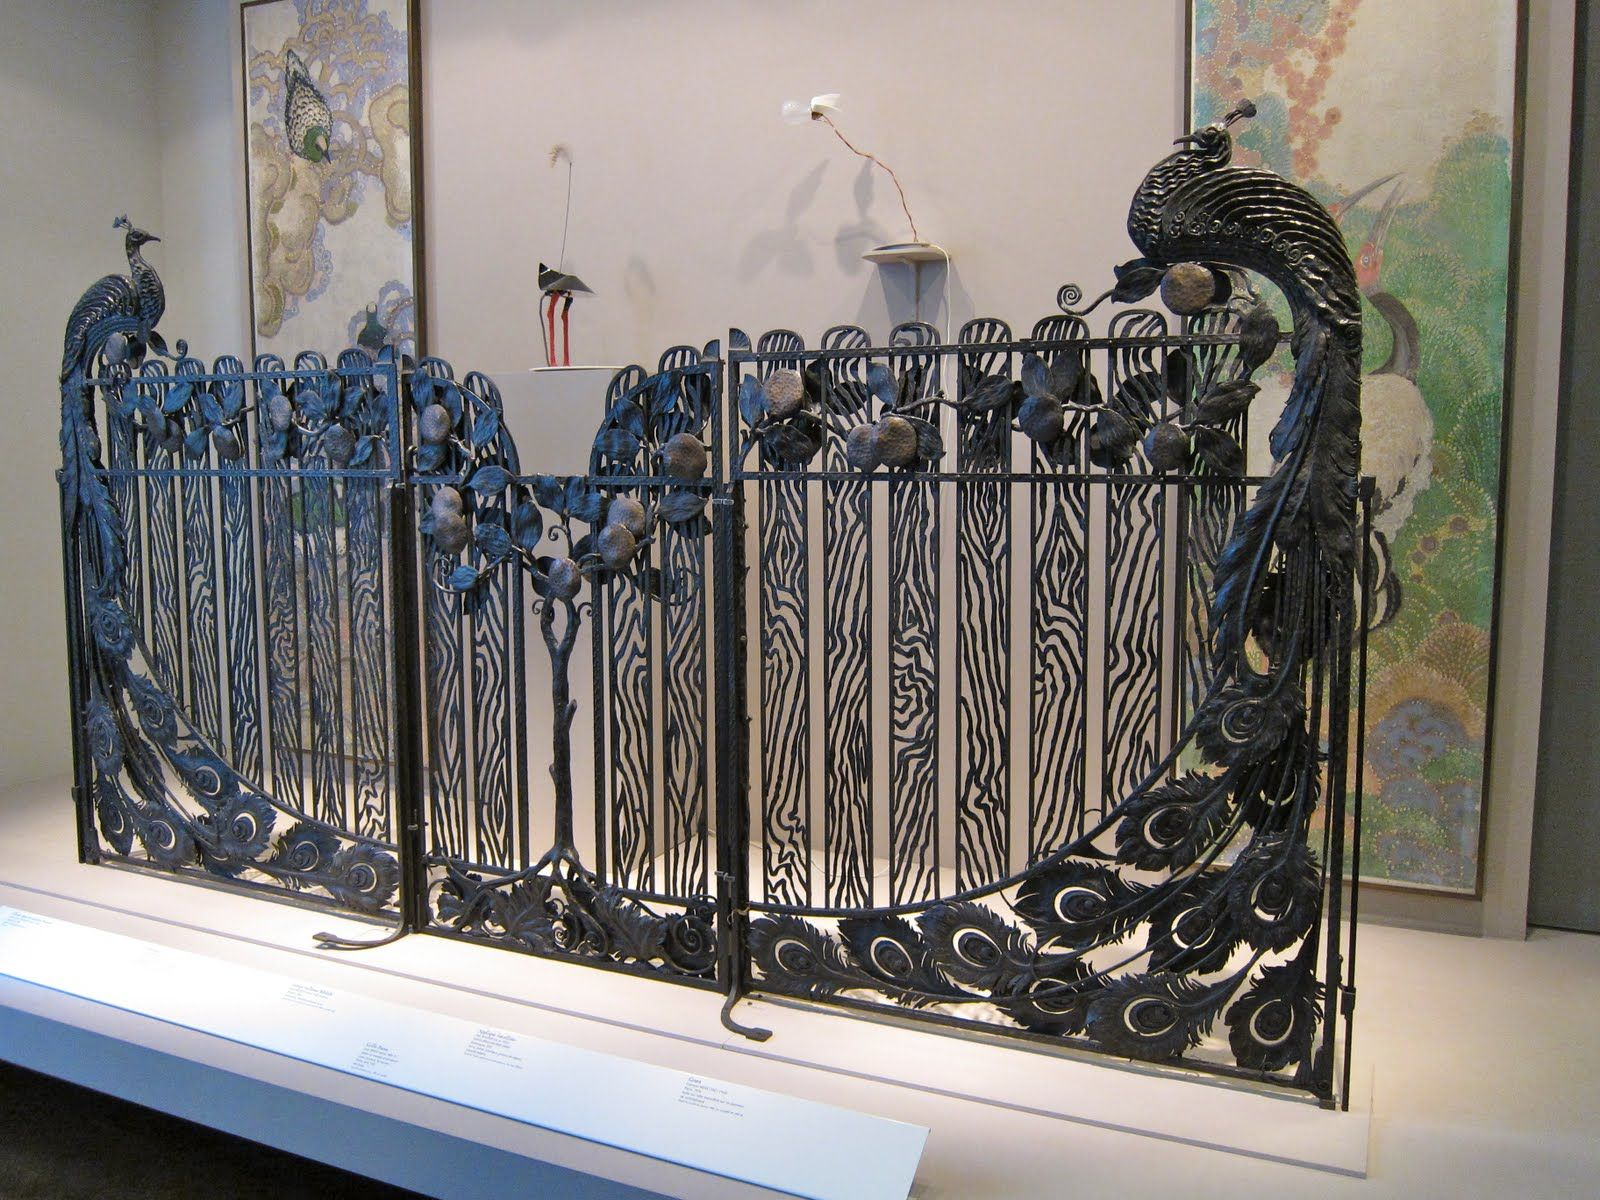 Pin antique garden gates in wrought iron an art nouveau style on - Find This Pin And More On Metal Gates